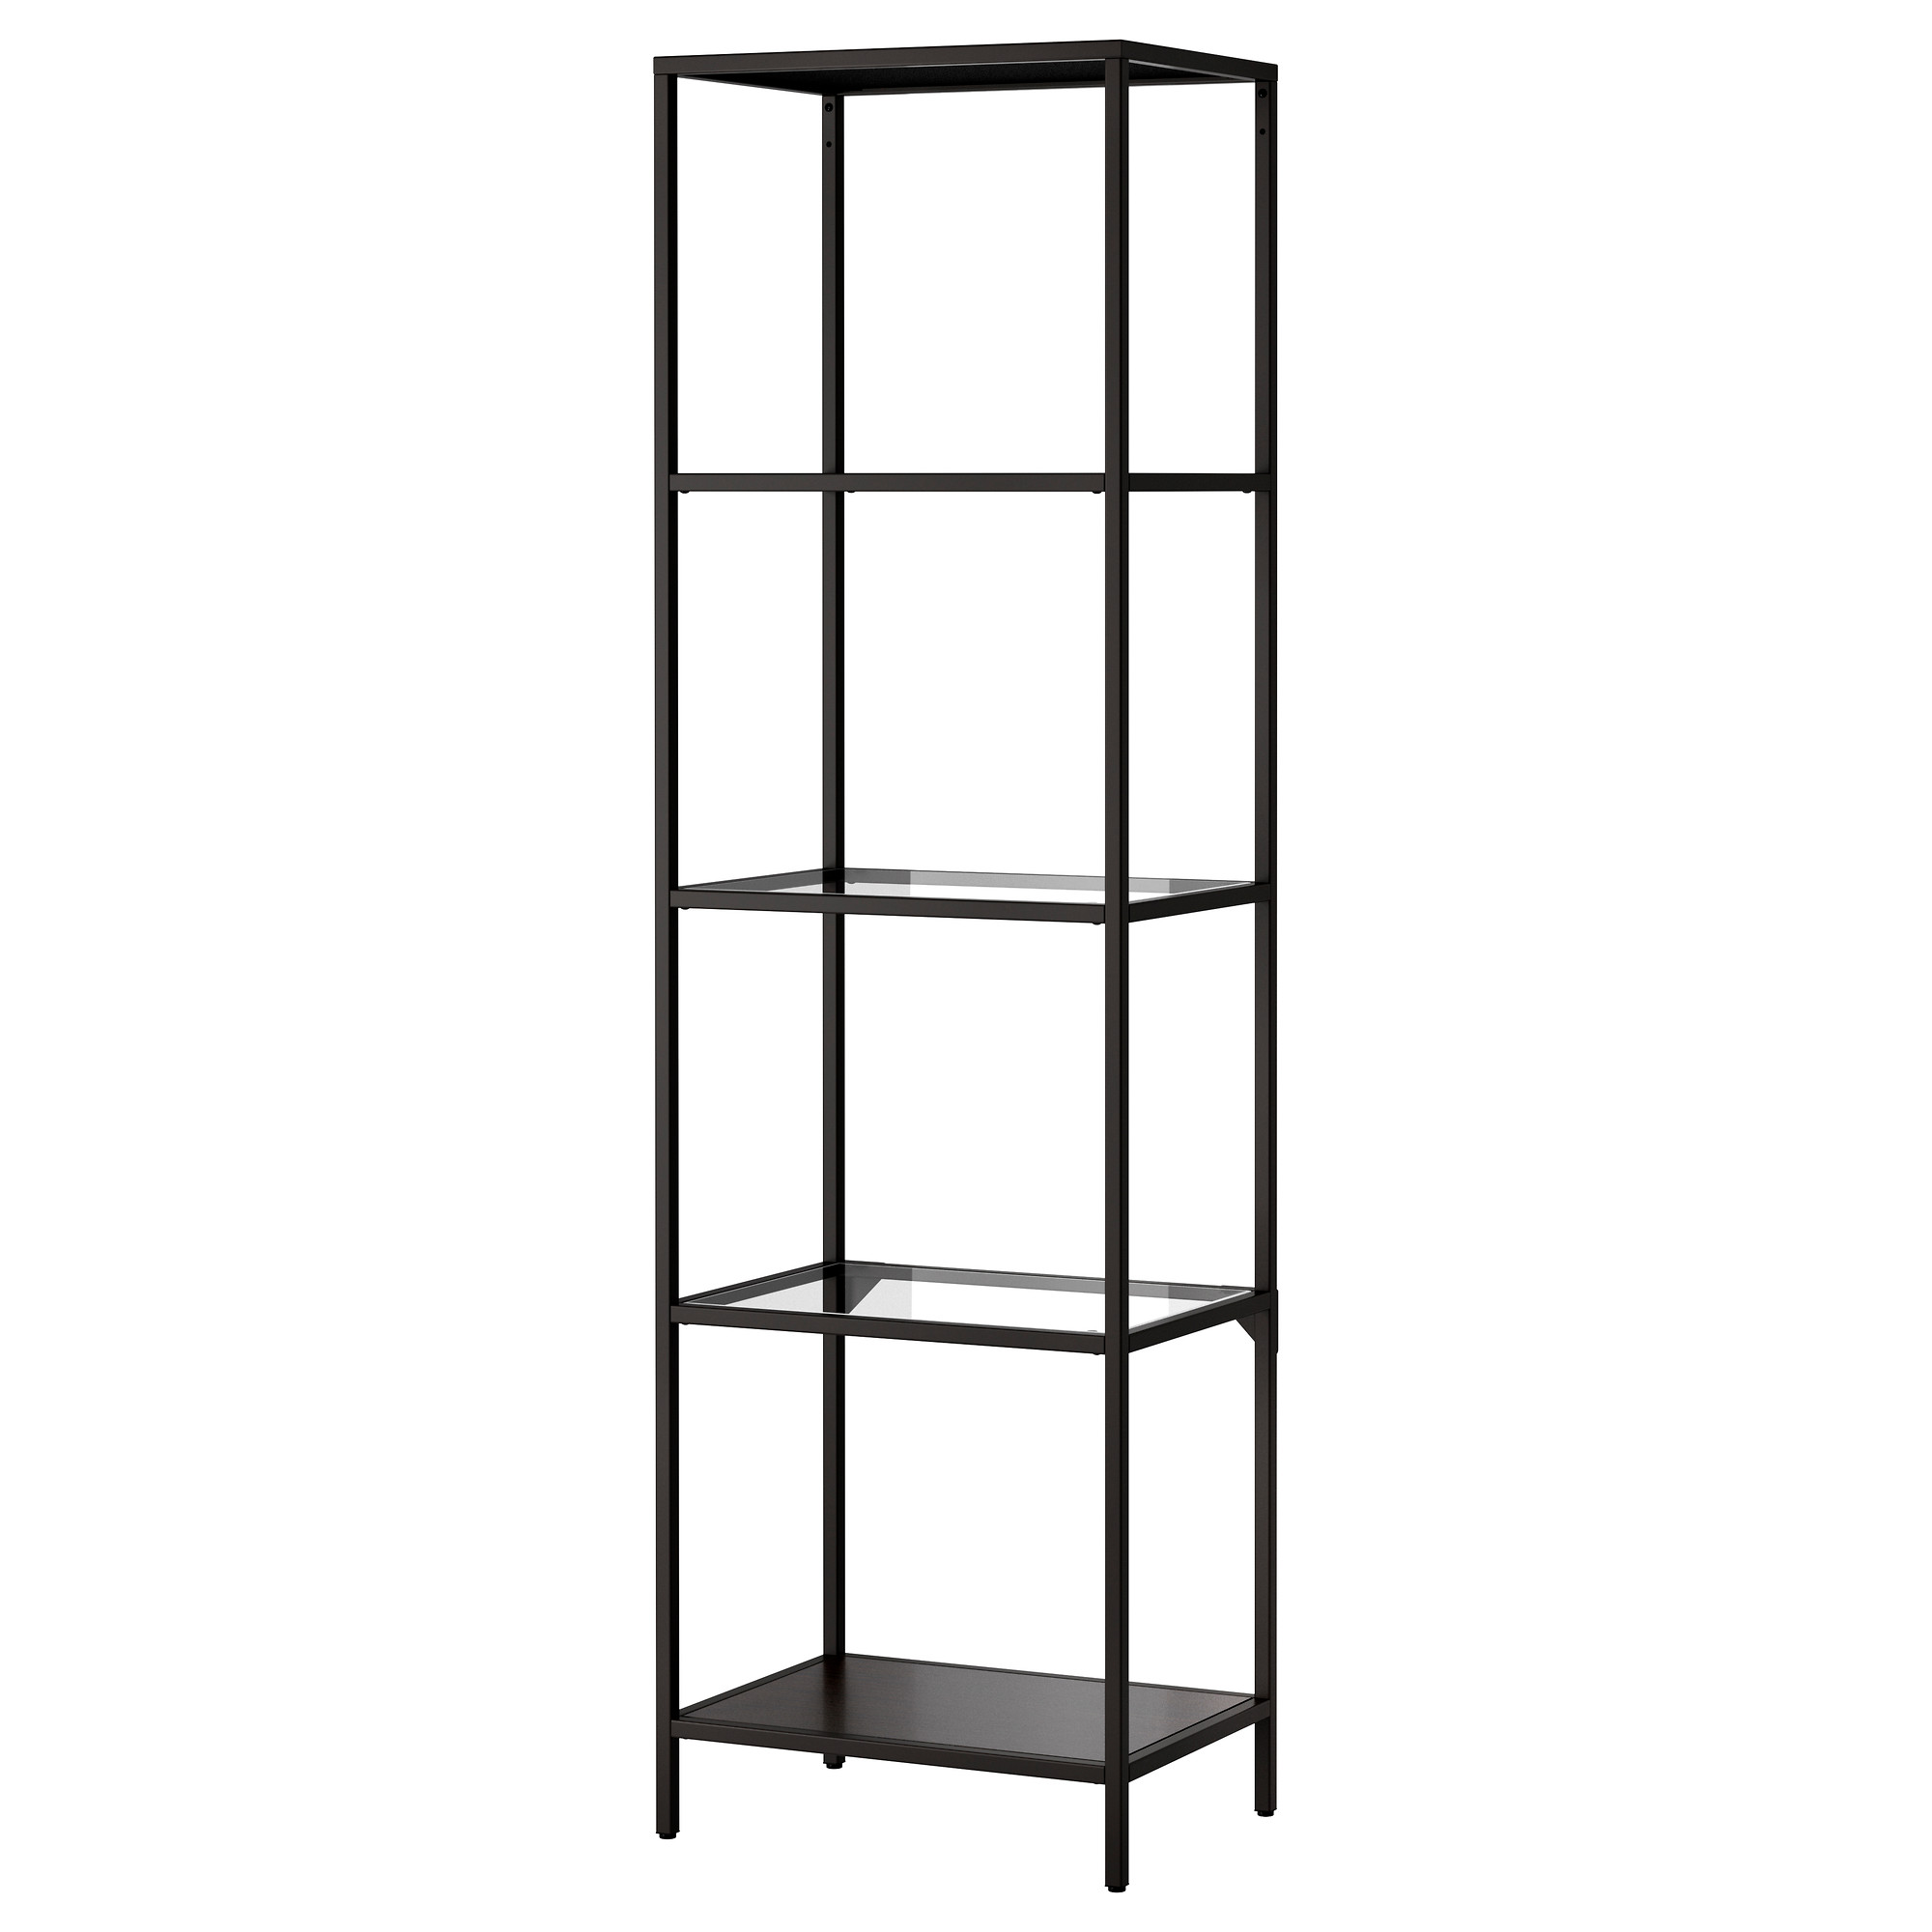 shelving units ikea vittsjö shelving unit adjustable feet; stands steady also on an uneven EZCDTOF